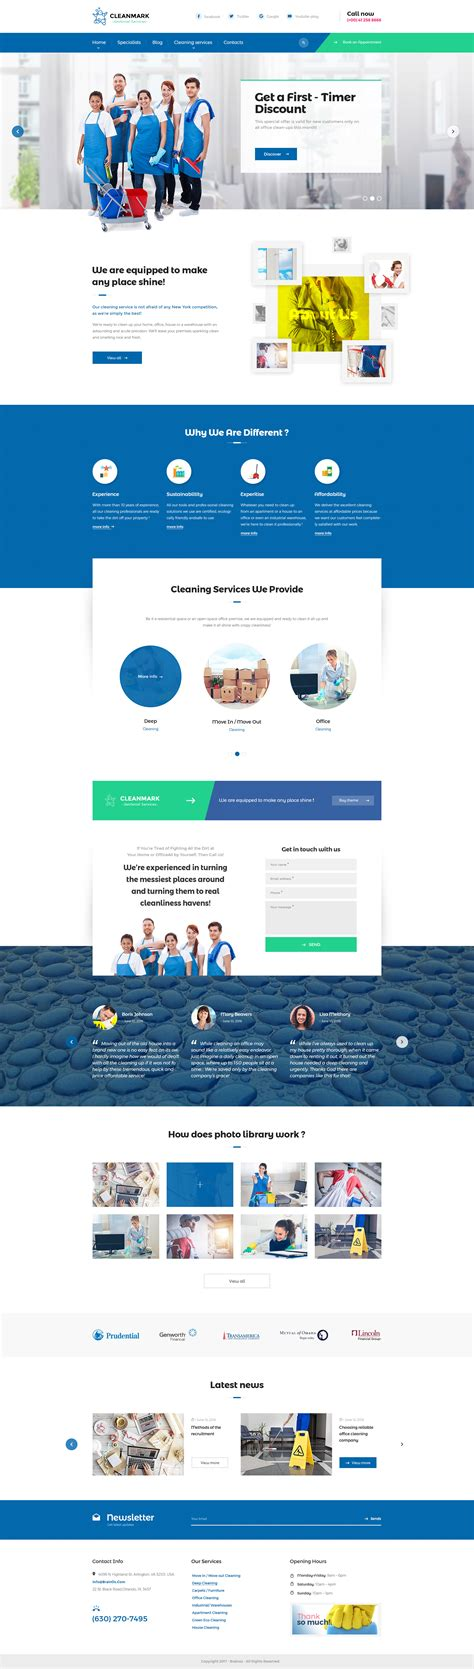 free wordpress themes zip files download free cleanmark cleaning janitorial service